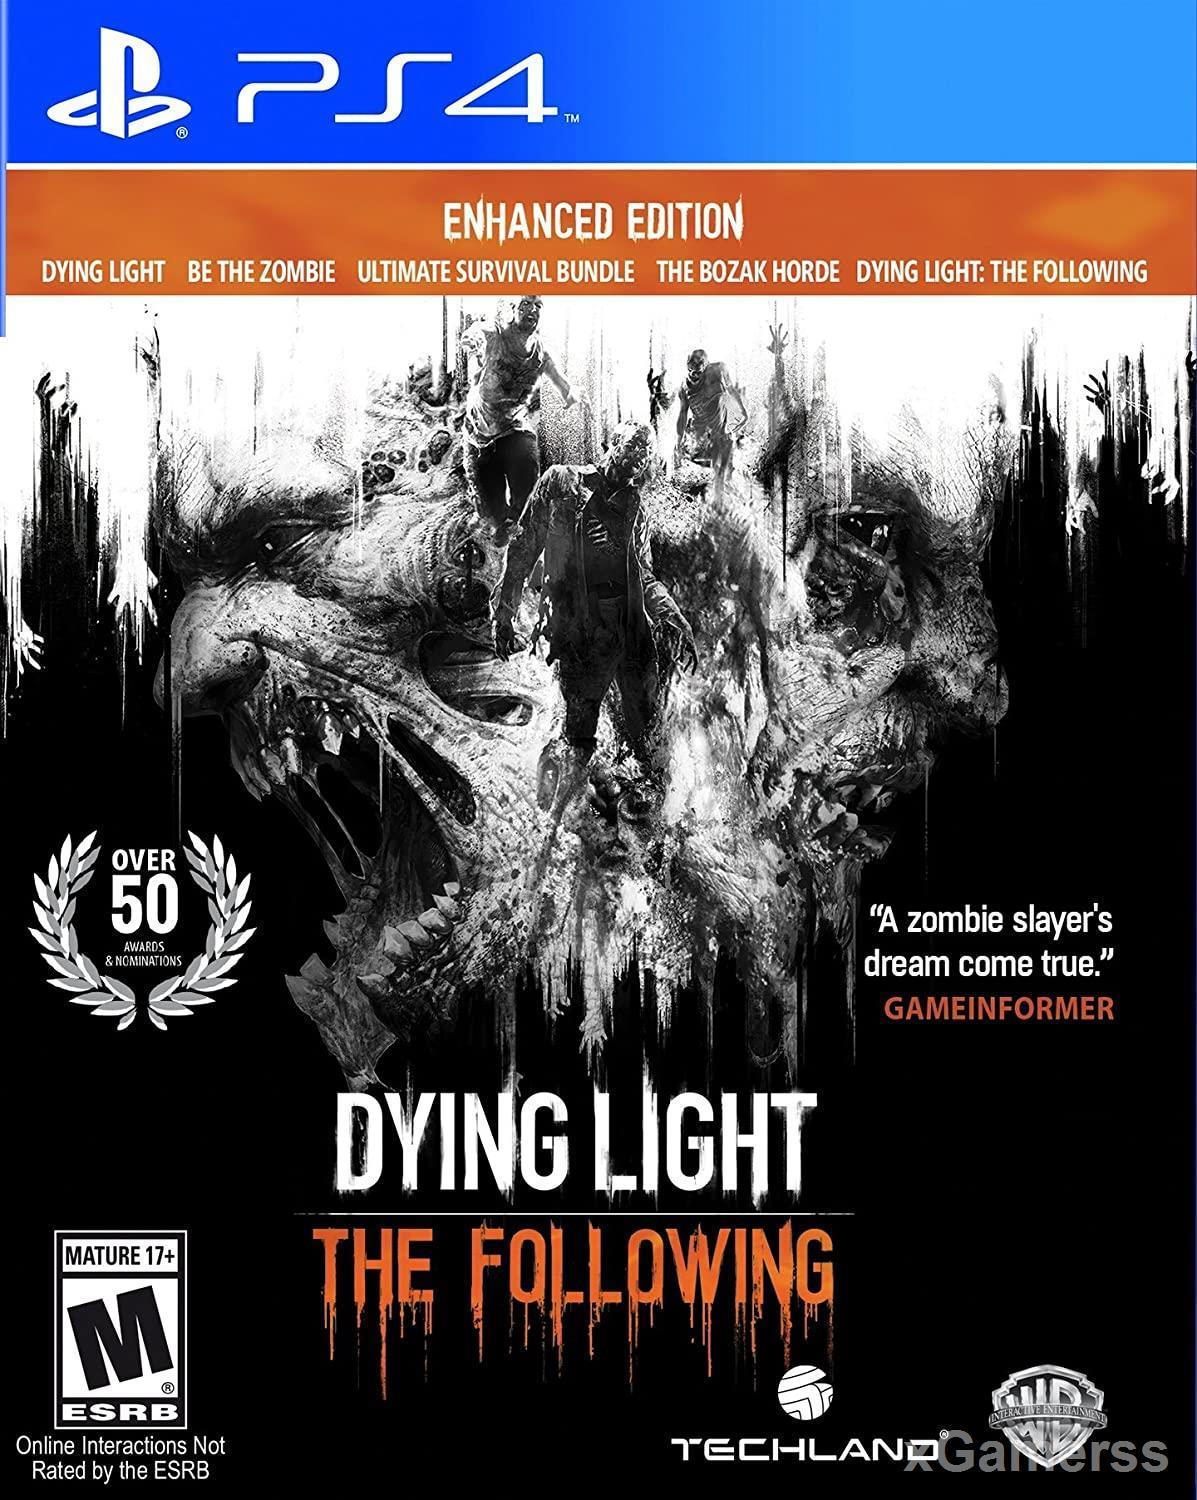 Dying Light: The Following - You will fall in love with the graphics and dynamics offered by the game